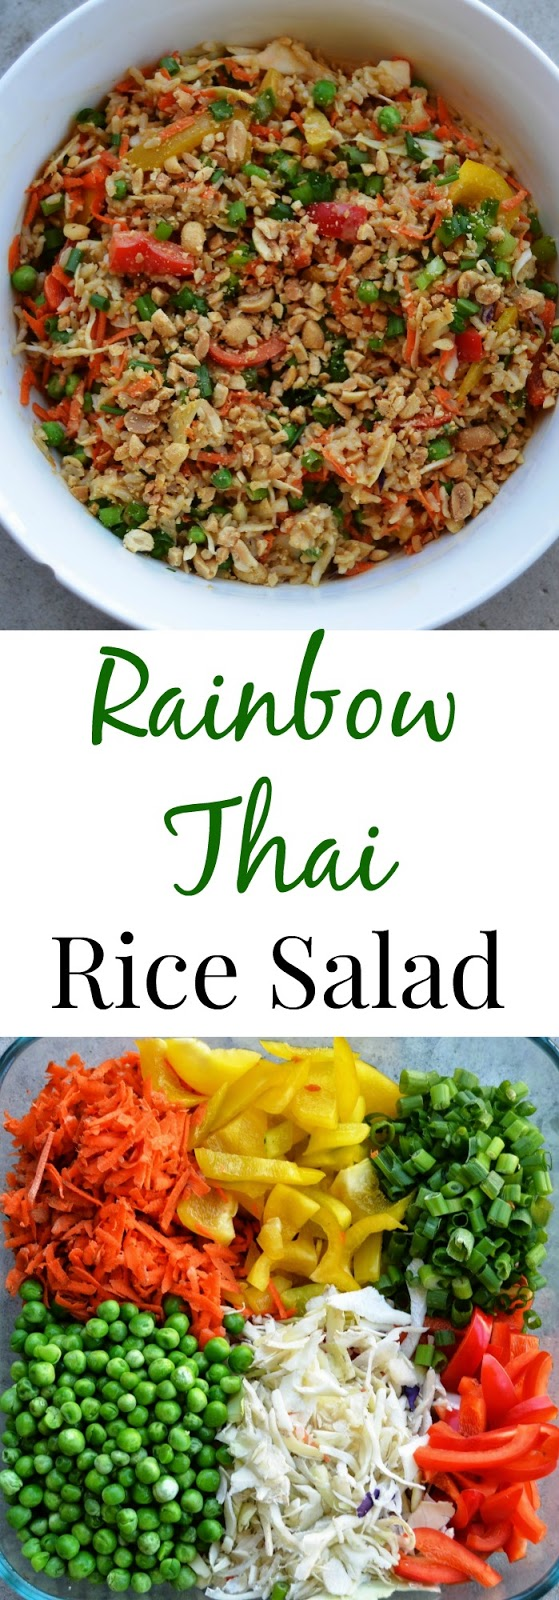 This Rainbow Thai Rice Salad has a homemade Thai peanut dressing and the salad is packed full of vegetables, brown rice and topped with crunchy peanuts!